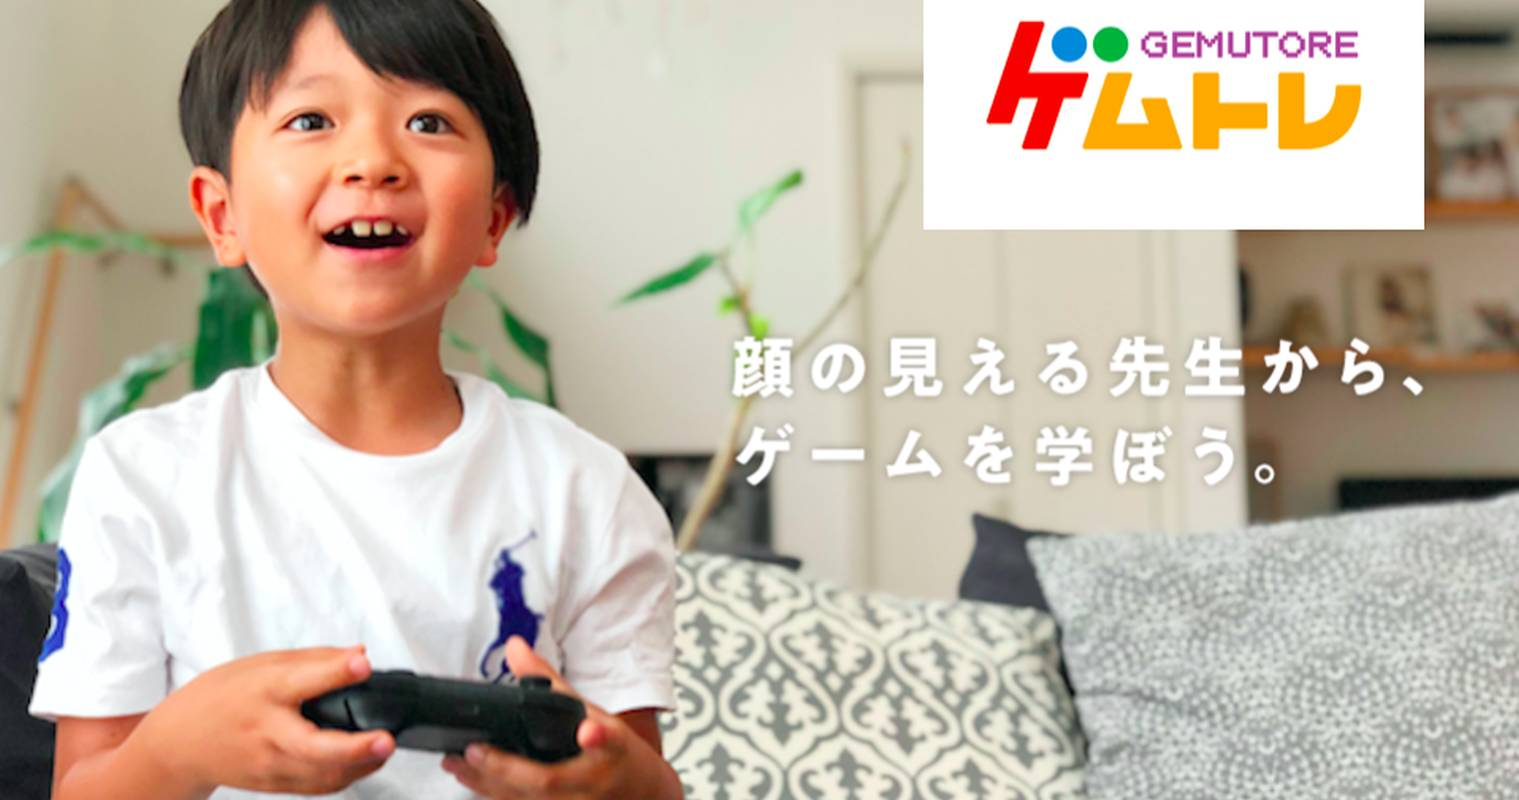 "New Japanese Tutoring Service ""Gemutore"" Wants To Help Kids Excel At Video Games"